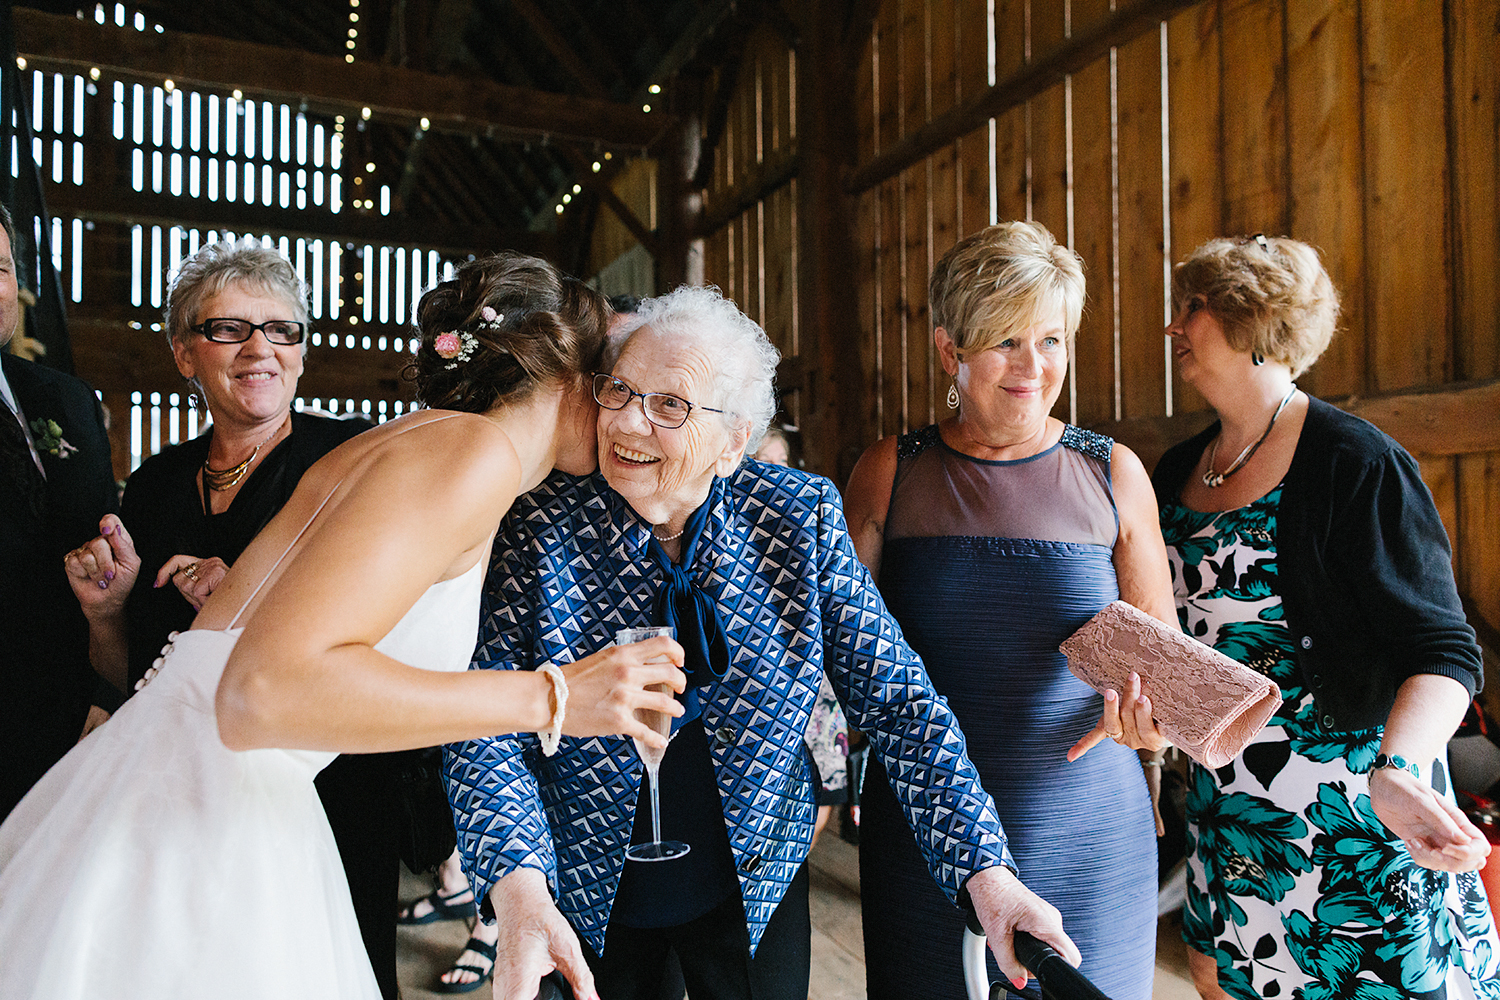 Alternative-Toronto-Wedding-Photographers-Photojournalistic-Wedding-Photography-in-Toronto-bradford-barn-farm-wedding-venue-rustic-inspiration-cocktail-hour-congratulations-grandma-cute.jpg